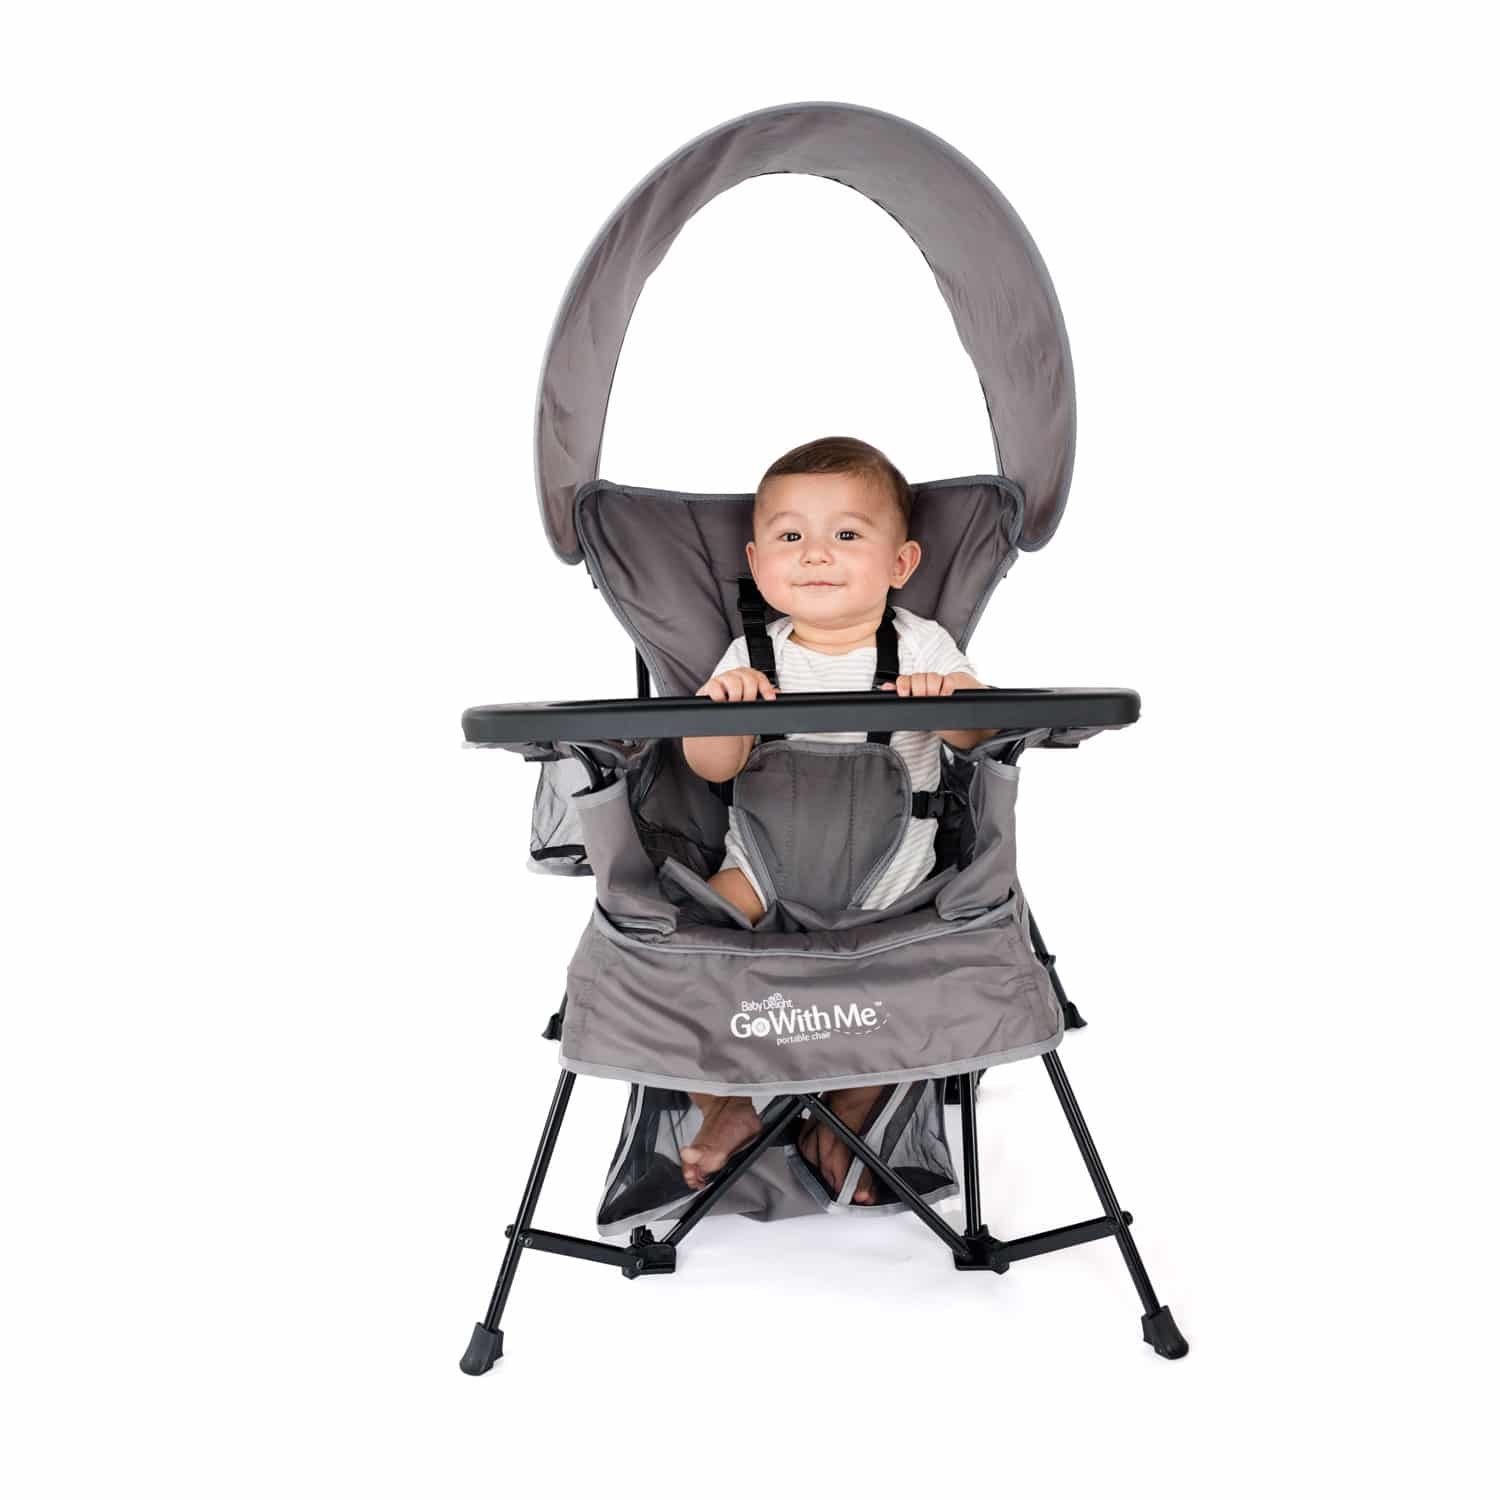 Go With Me Venture Deluxe Portable Chair Grey Baby